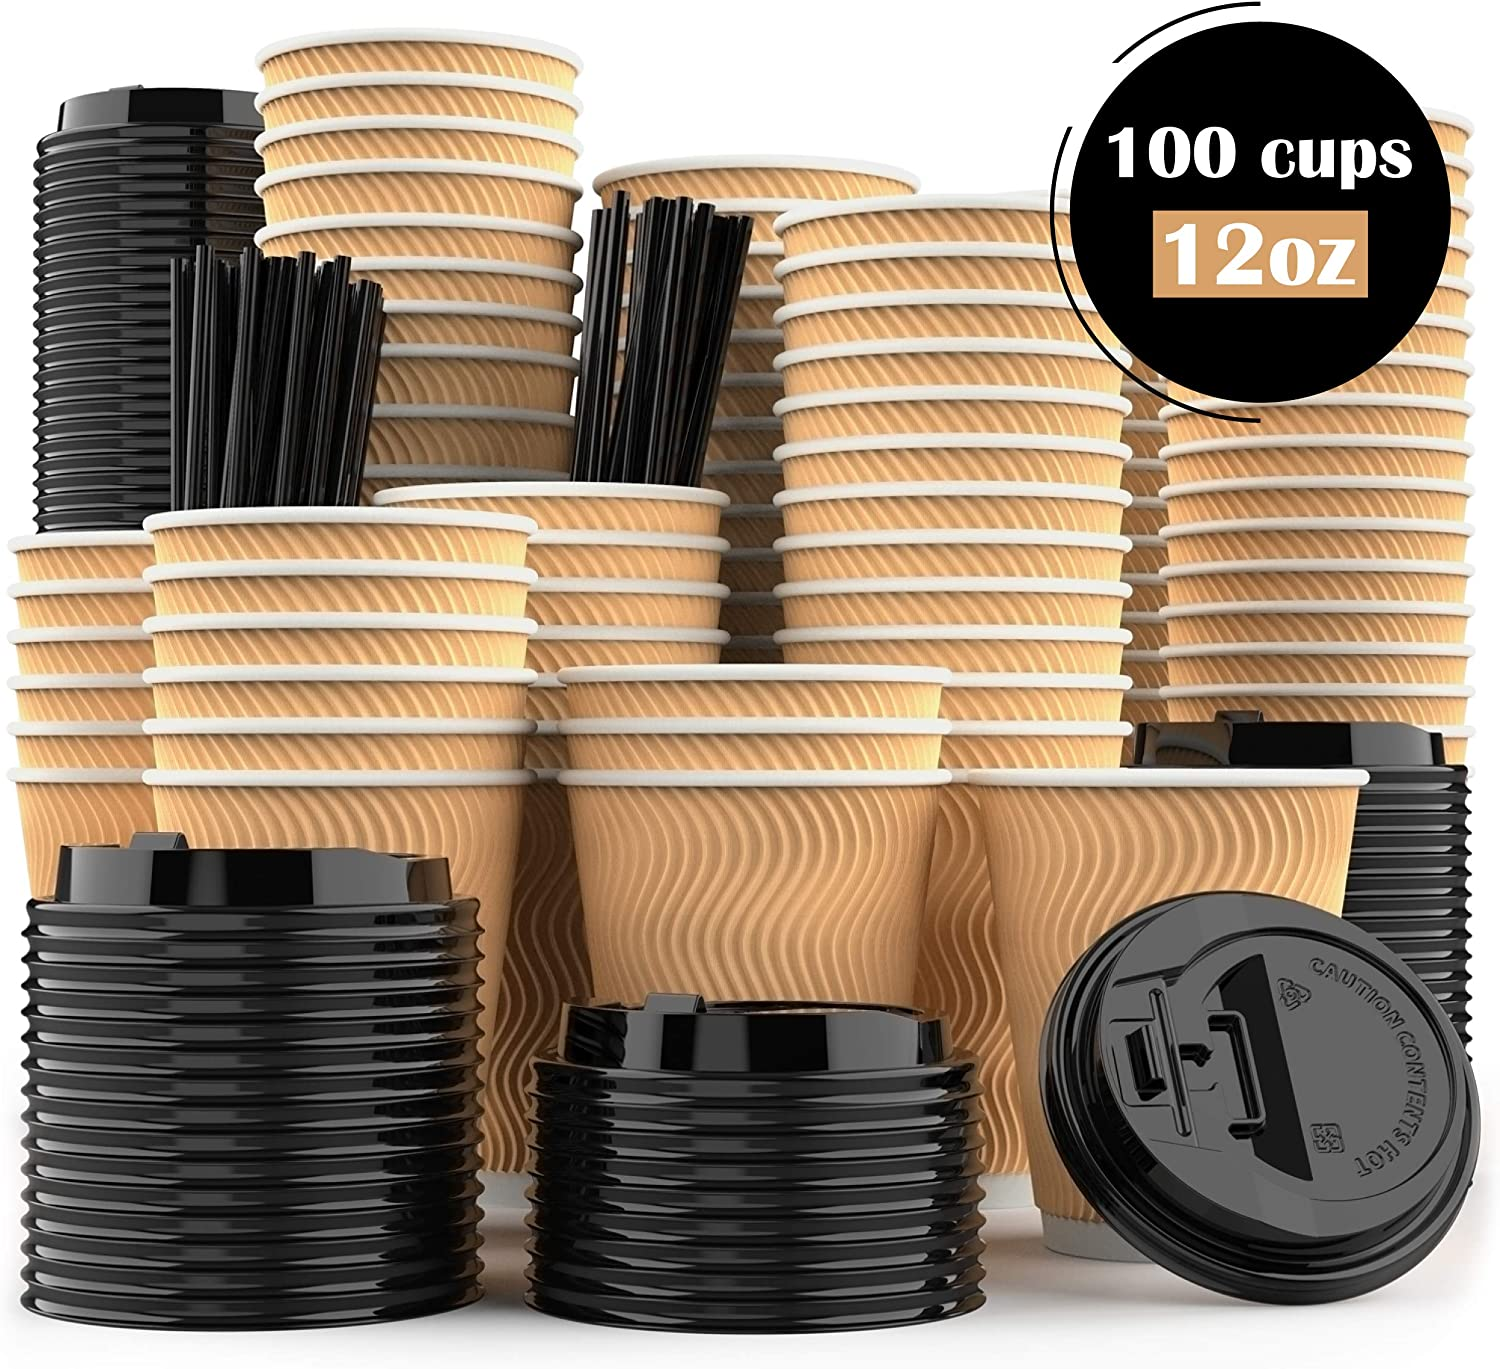 100 Pack 12 Oz Disposable Hot Paper Coffee Cups, Lids, Sleeves, Stirring Straws To Go